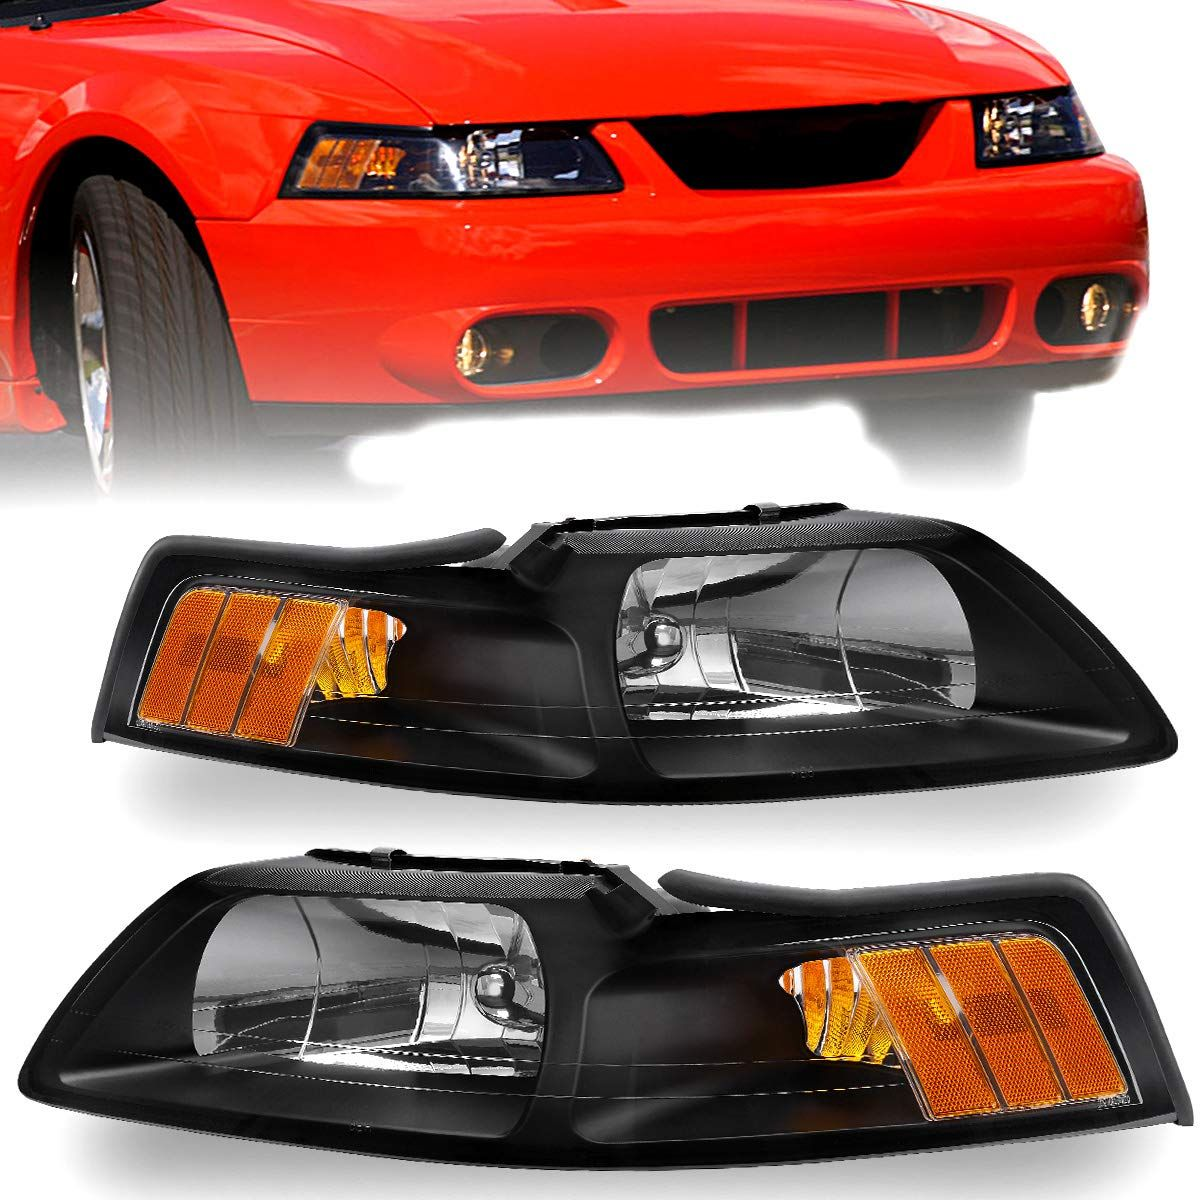 For 1999 2004 Ford Mustang Headlights Oedro Black Housing With Amber Reflector Headlight Lamp Set Left Right In 2020 2004 Ford Mustang Ford Mustang Mustang Headlights